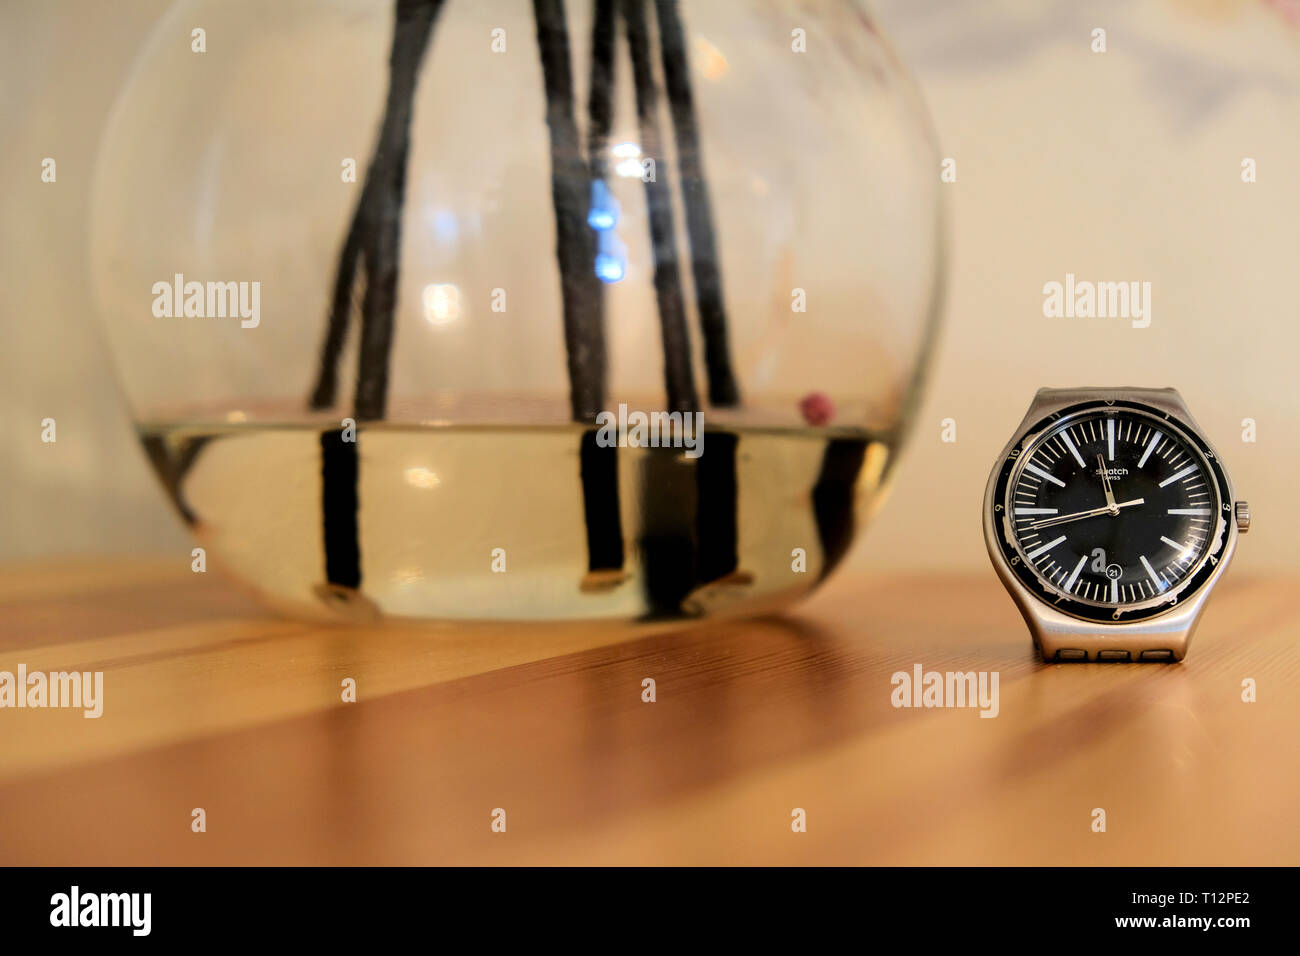 Wrist watch on wooden counter top with flower vase base with water and artificial flower stems; concept or order and time. - Stock Image